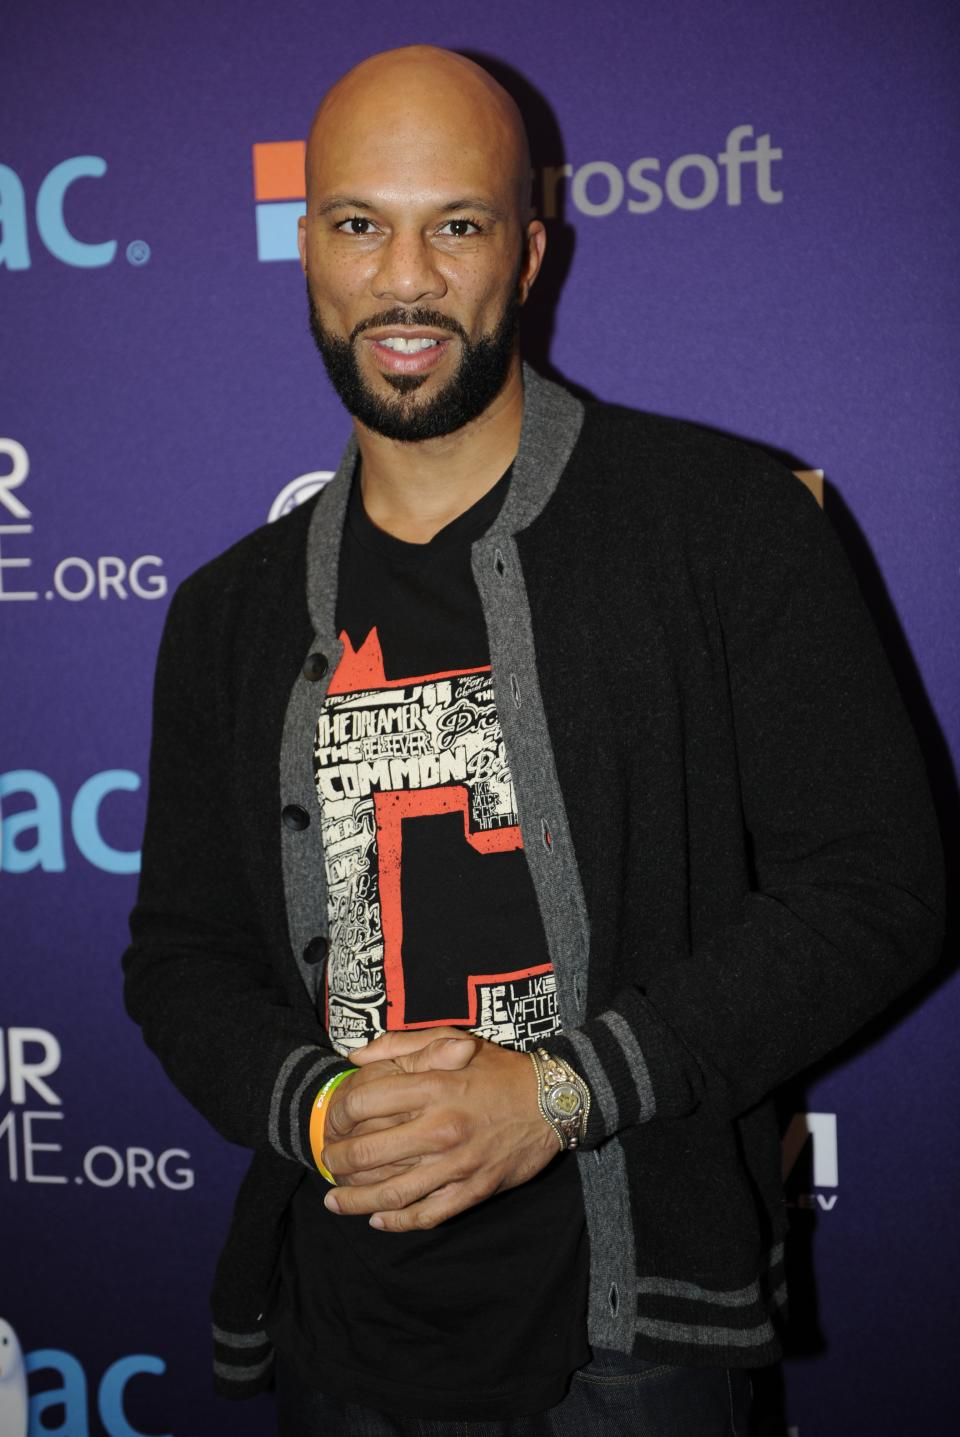 Musician Common arrives at the OurTime.org Inaugural Youth Ball Generation Now Party on Saturday, Jan. 19, 2013, in Washington. (Photo by Nick Wass/Invision/AP)